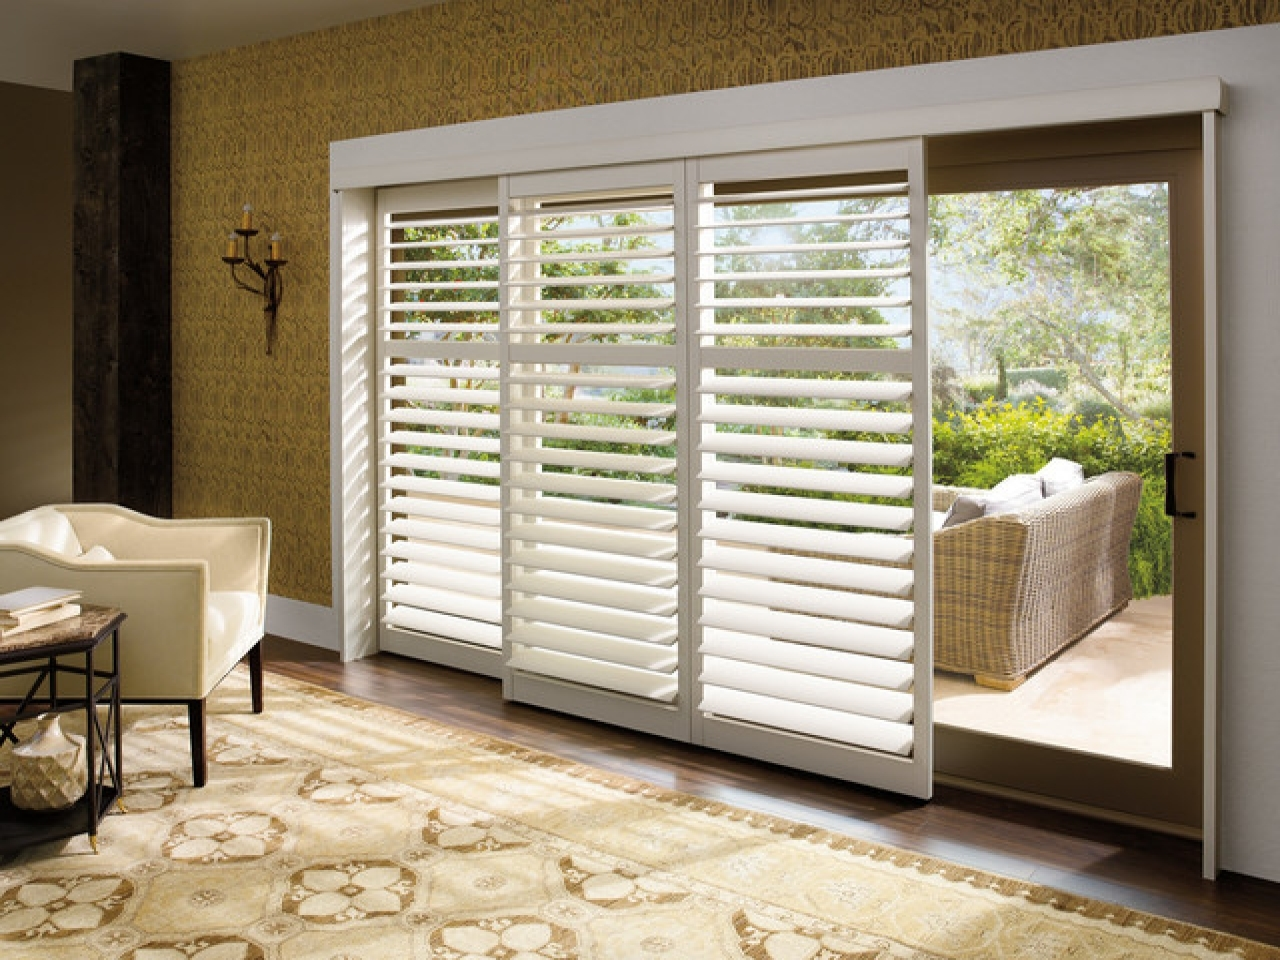 Blinds For A Sliding Glass Door1280 X 960